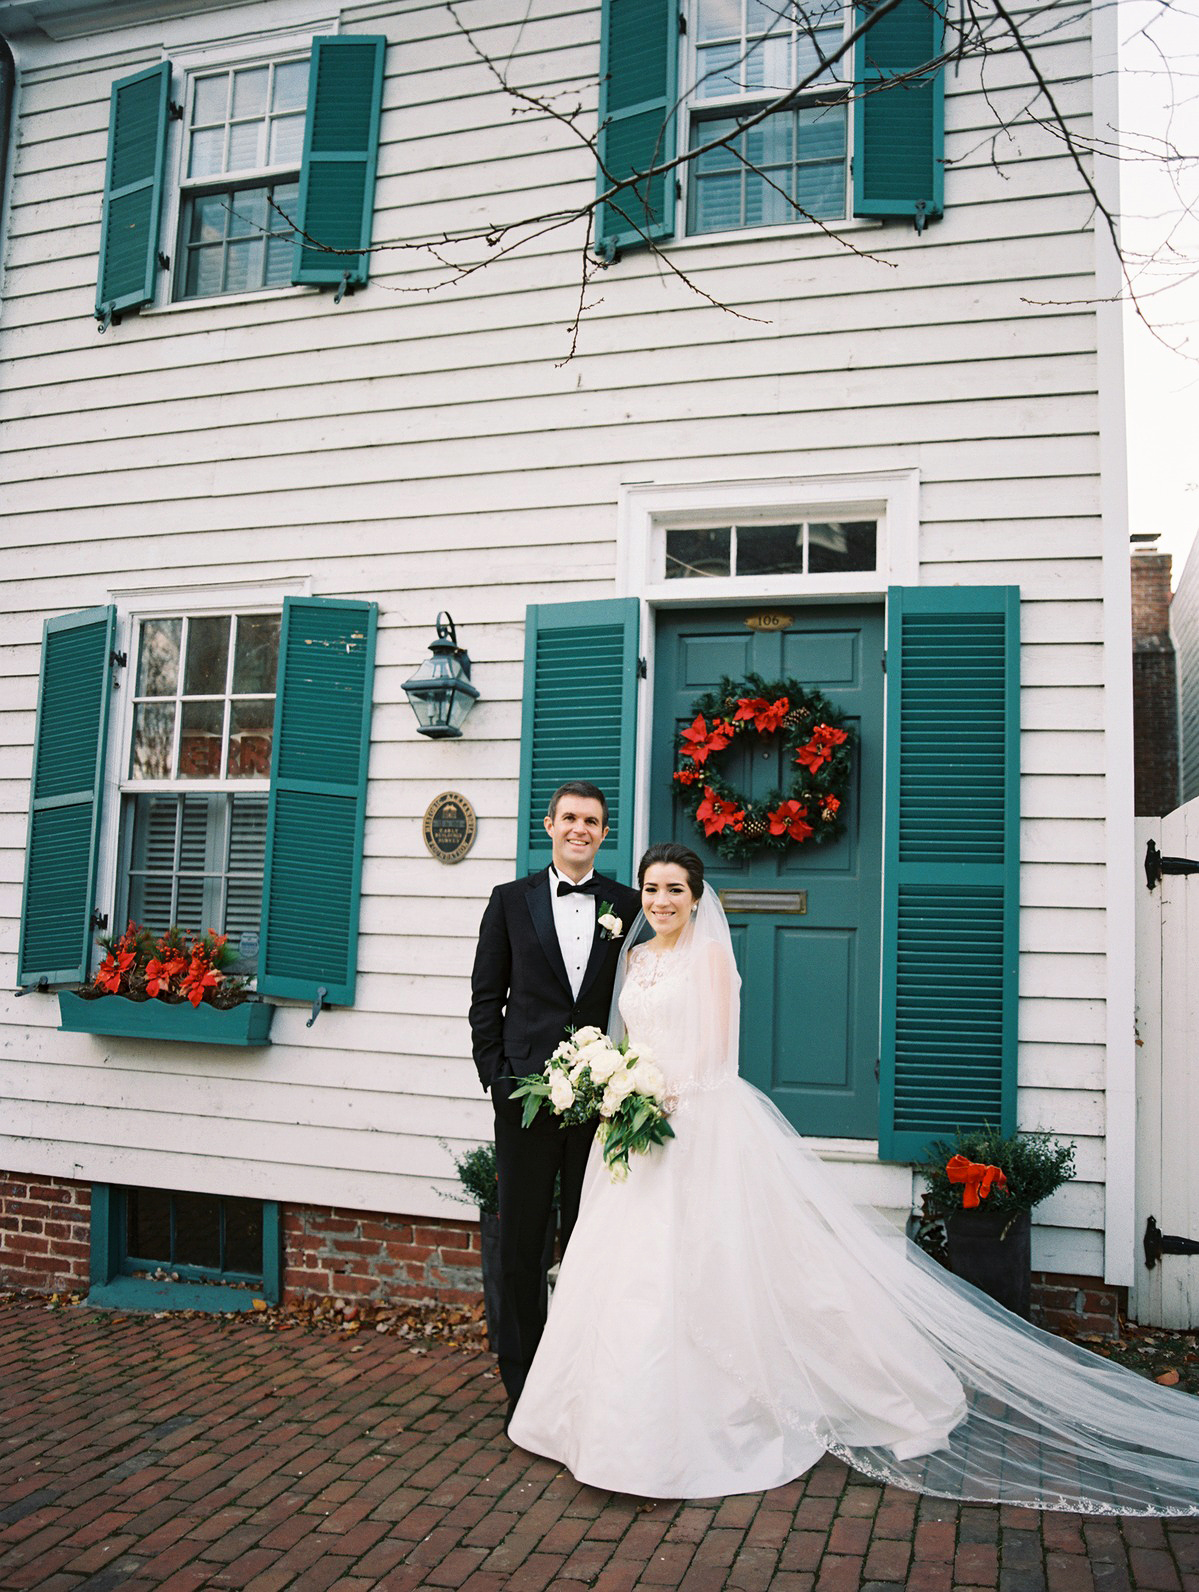 celina rob wedding virginia couple house